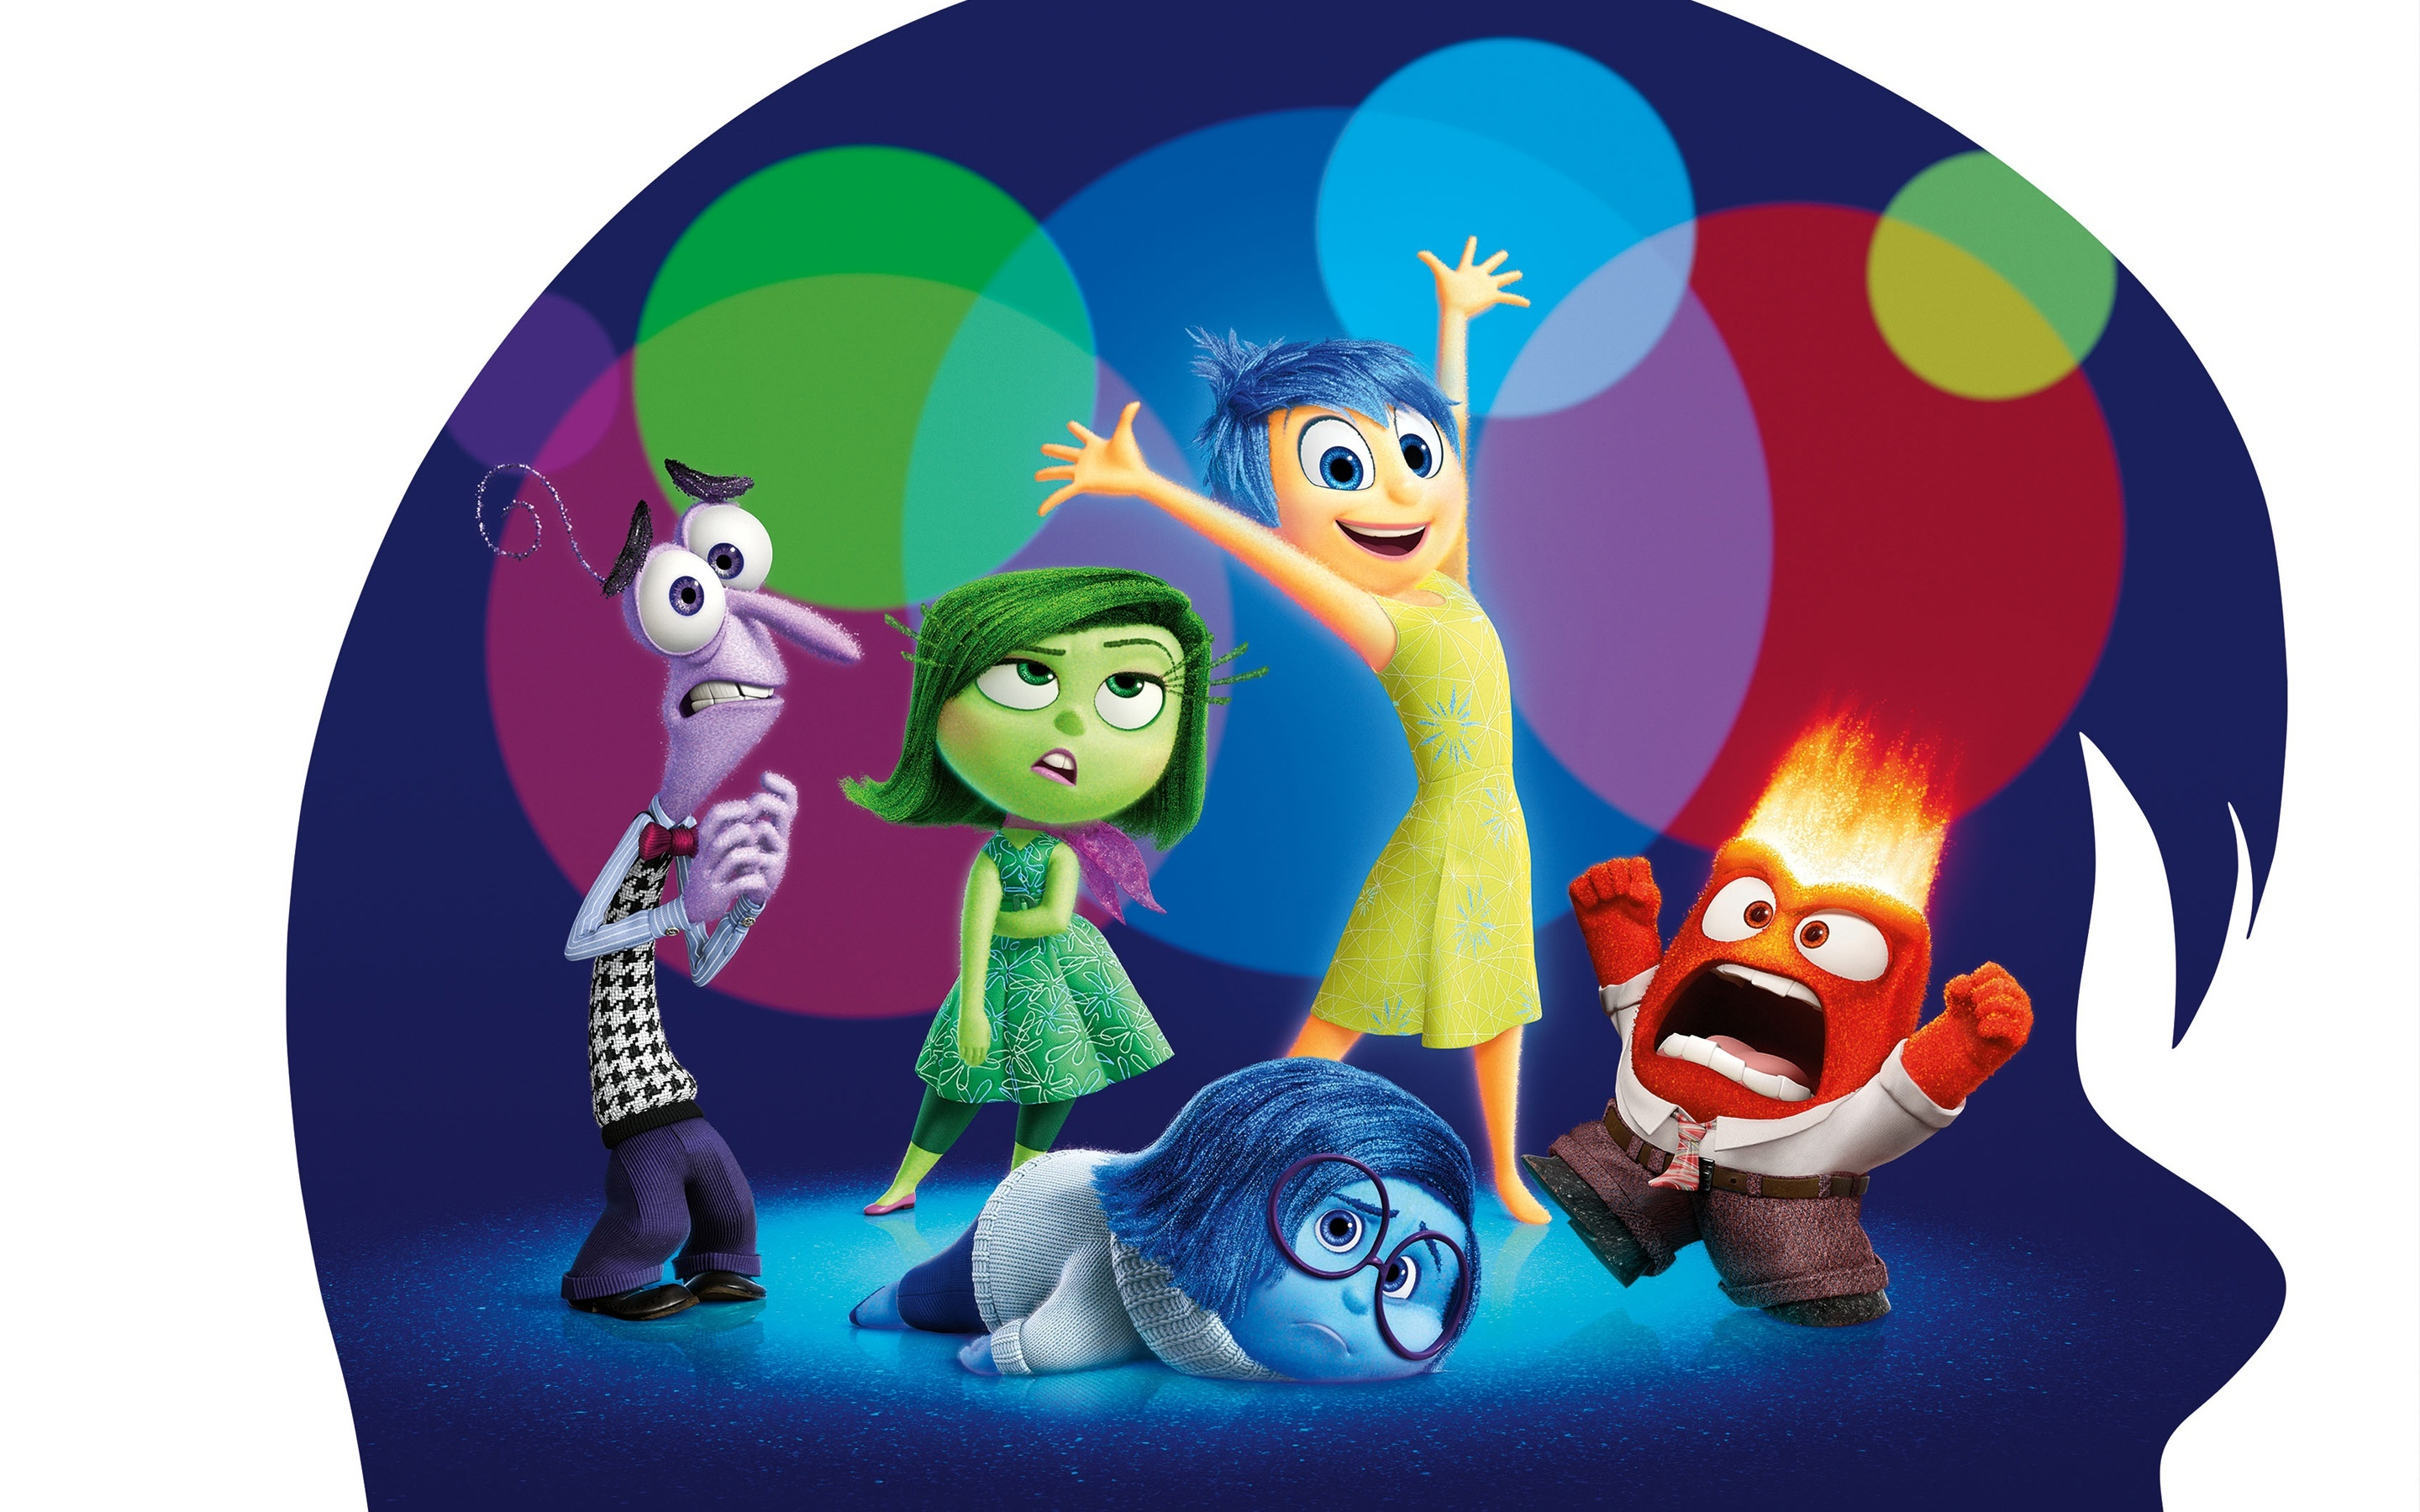 Inside Out Movie 2015 HD Wallpaper   iHD Wallpapers 2880x1800